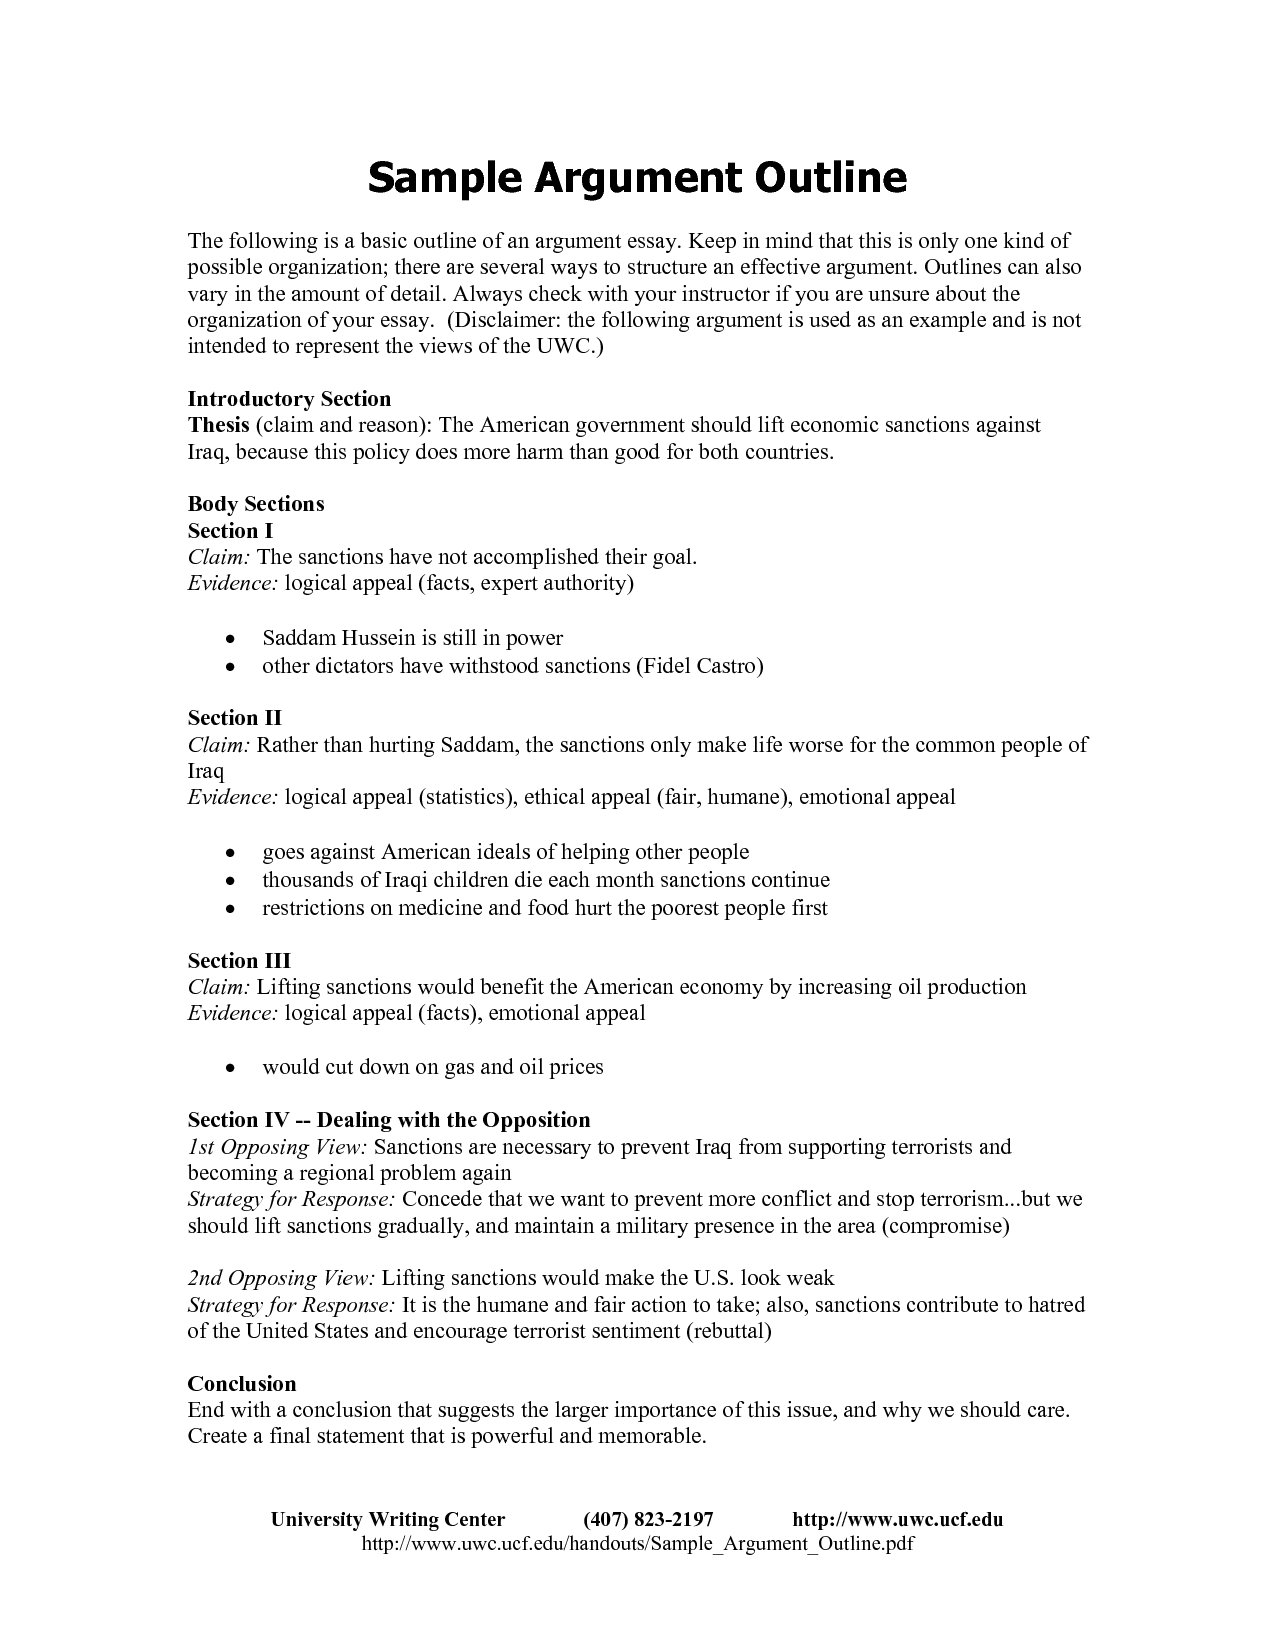 007 example argumentativey outline onneto format for ironviper co